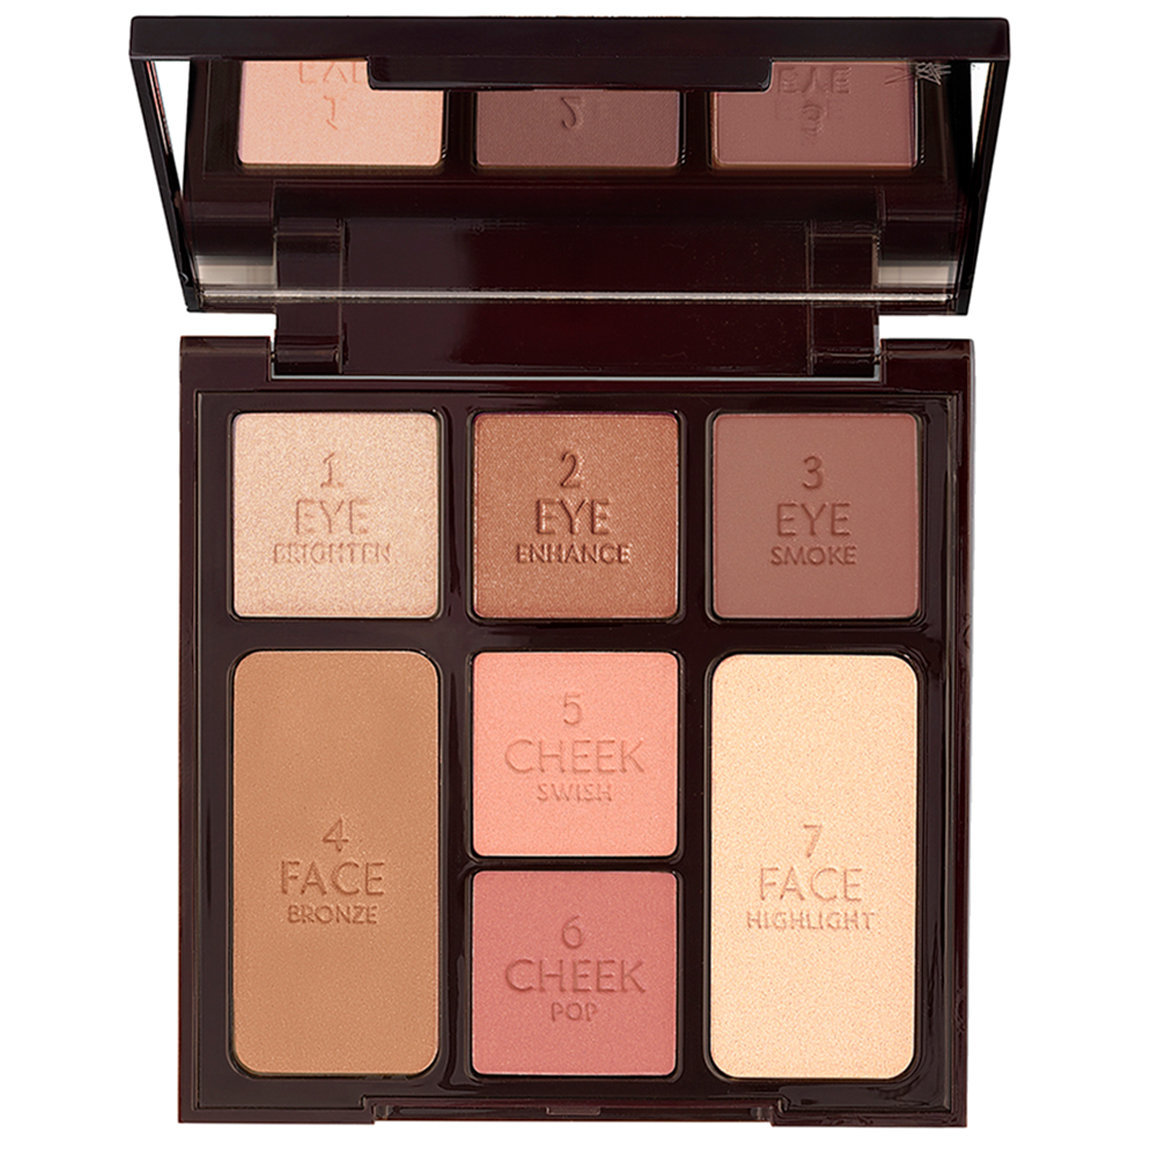 Charlotte Tilbury Instant Look in a Palette Stoned Rose alternative view 1 - product swatch.